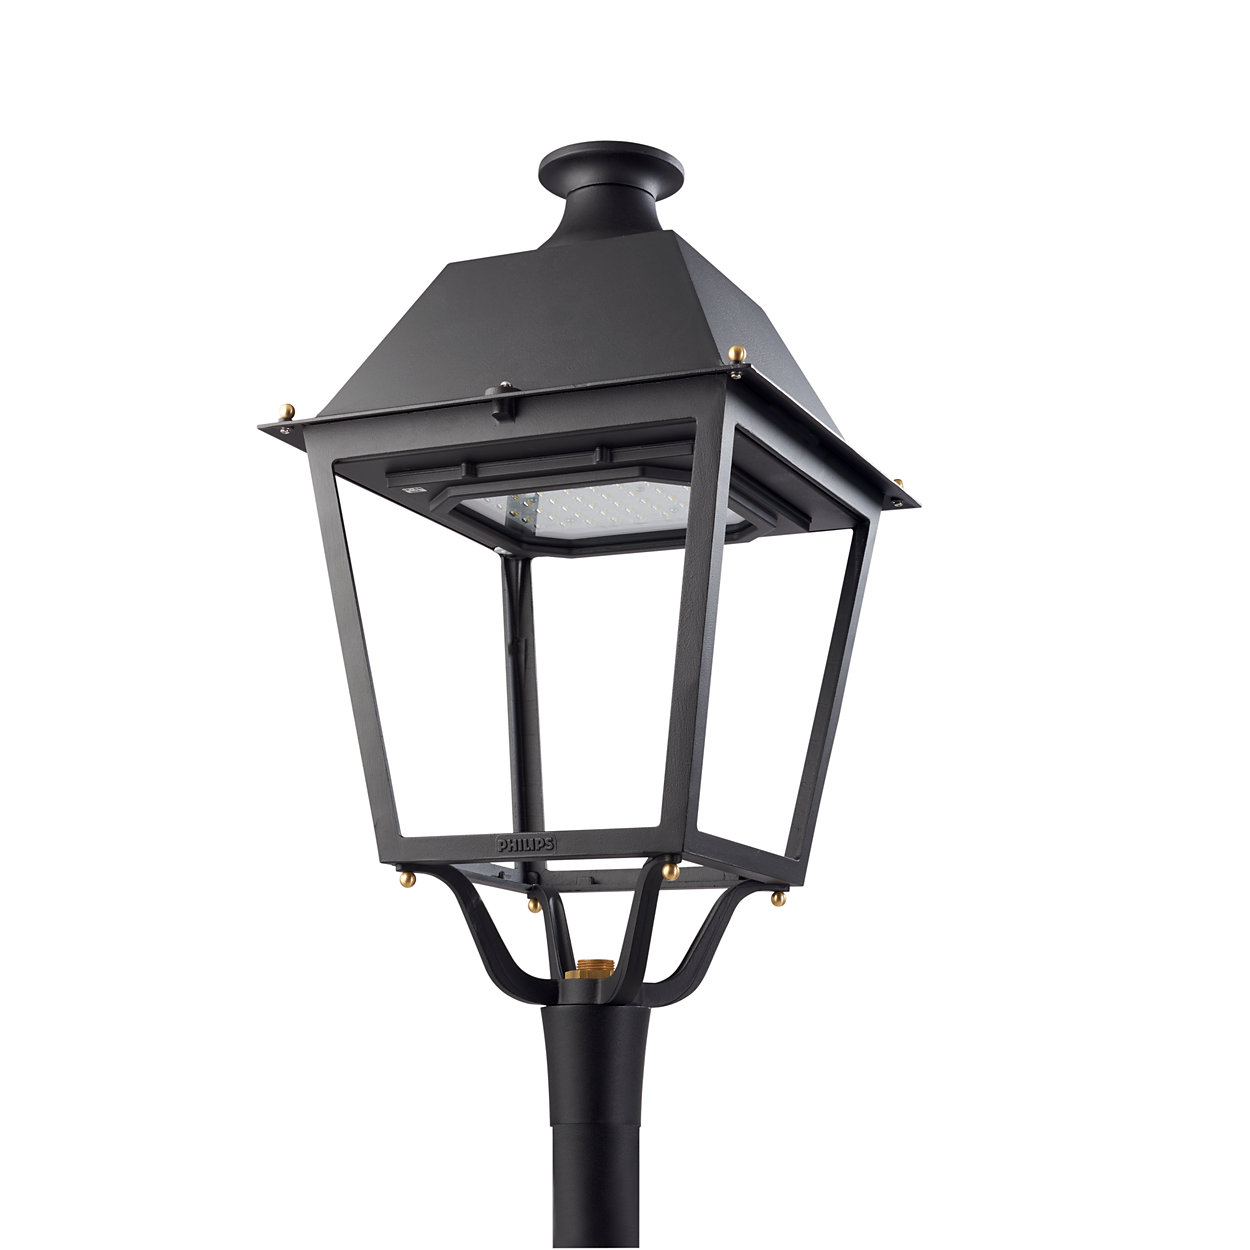 An iconic Iberian four-sided luminaire